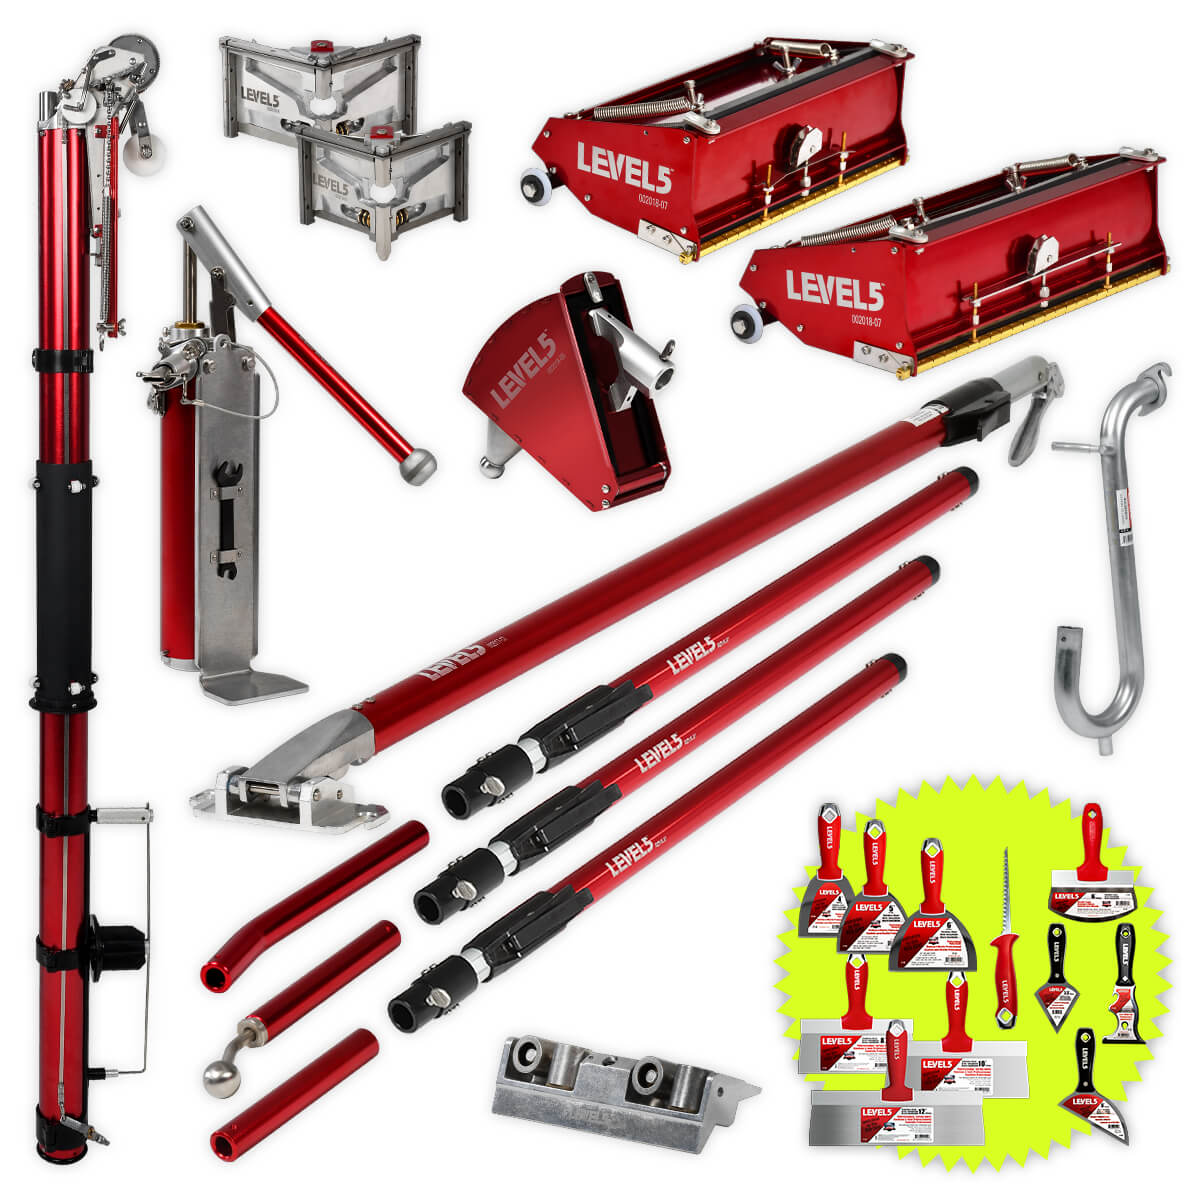 Drywall Taping Tool Set with 10/12 Inch Boxes & Ext. Handles | 4-621